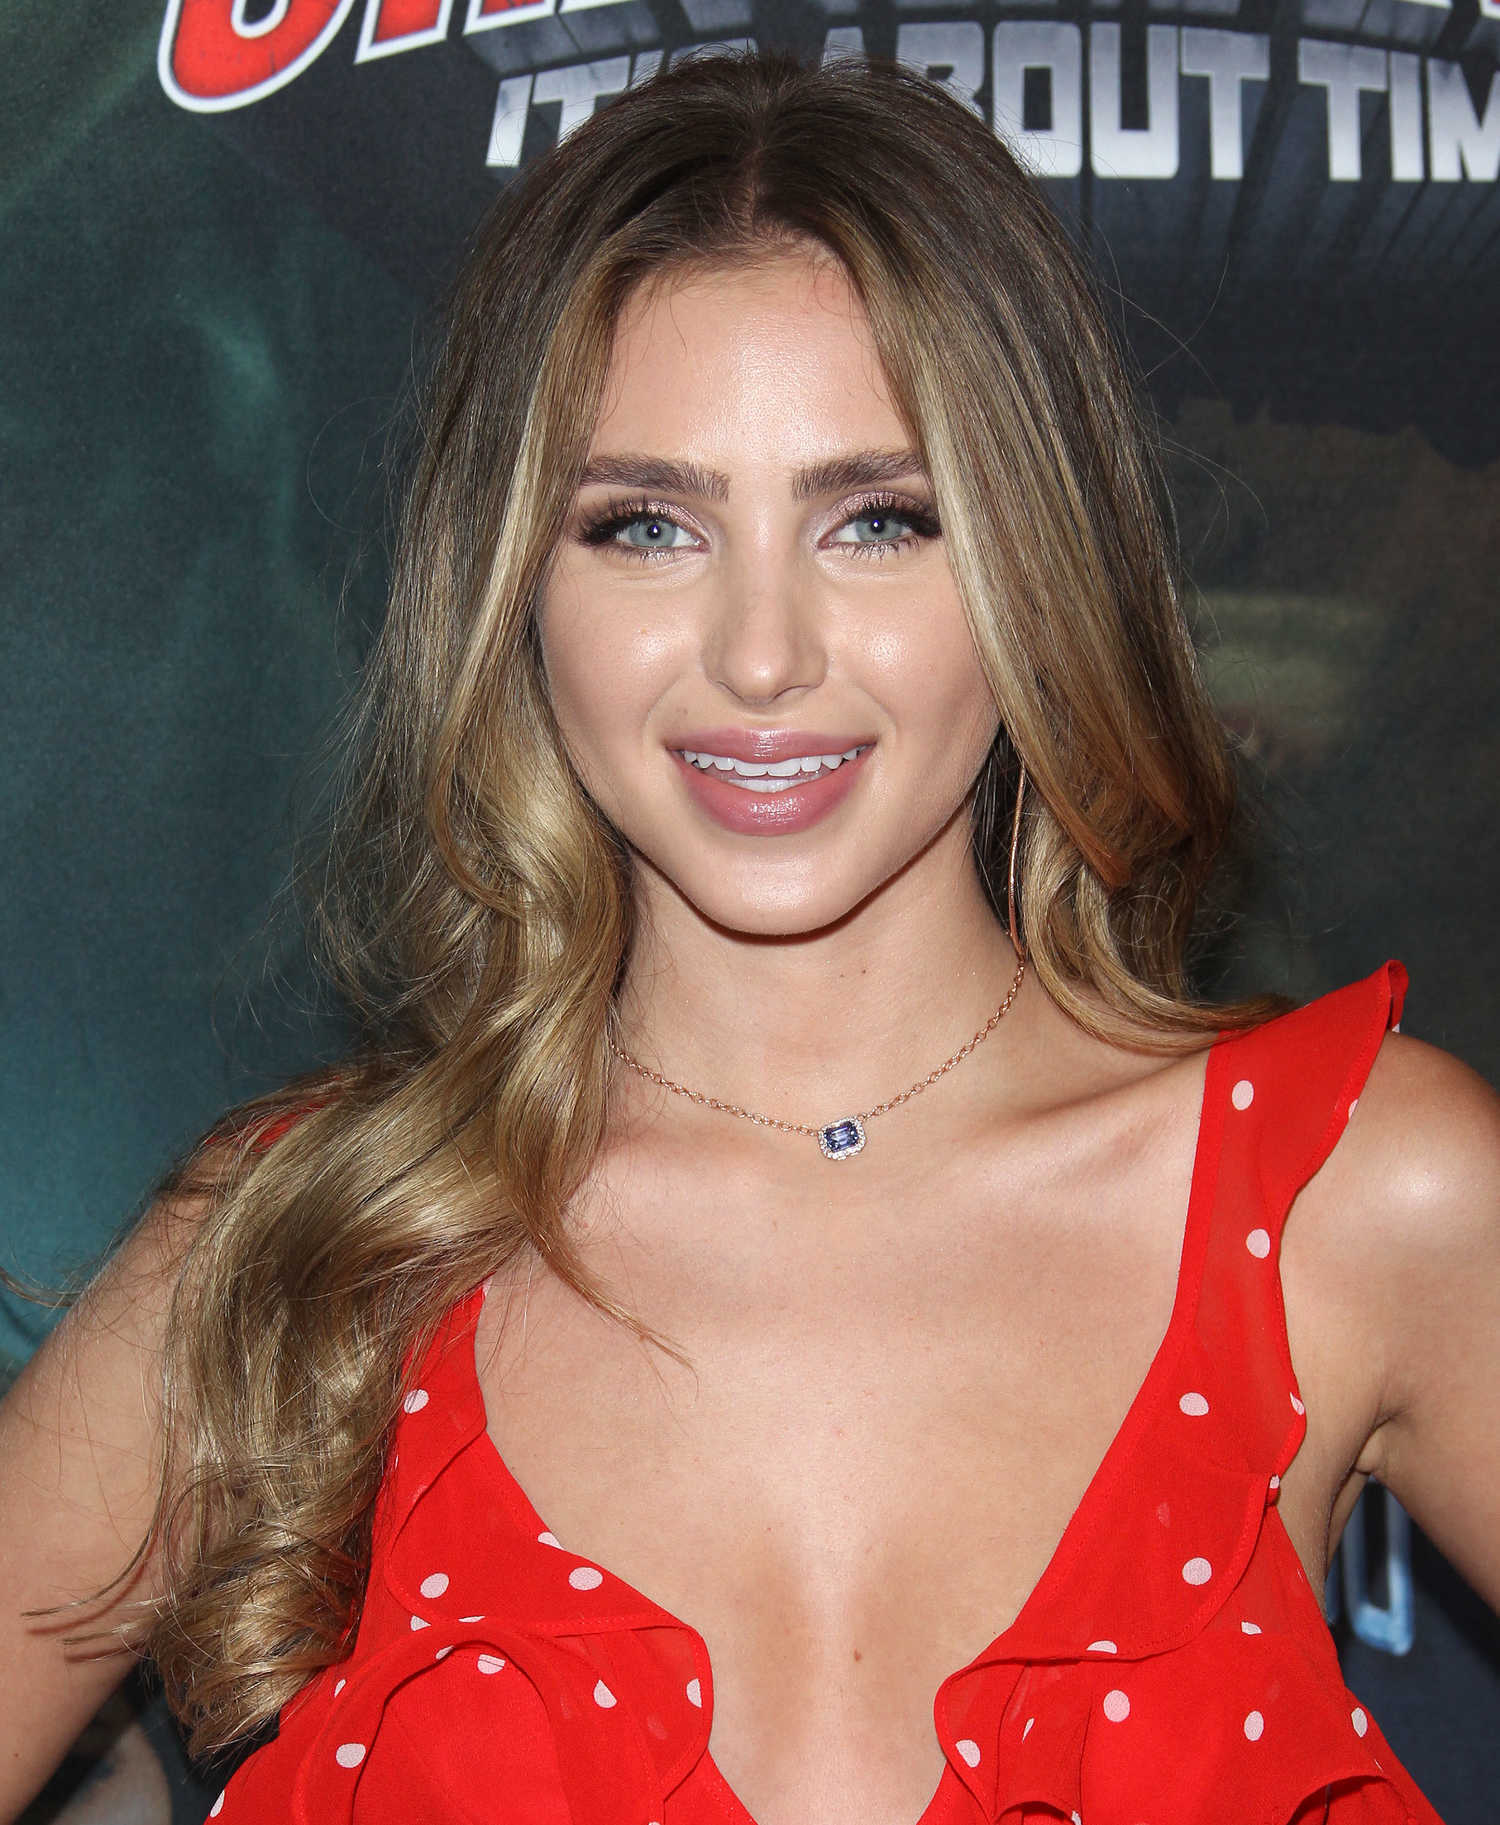 Ryan Newman at The Last Sharknado: Its About Time